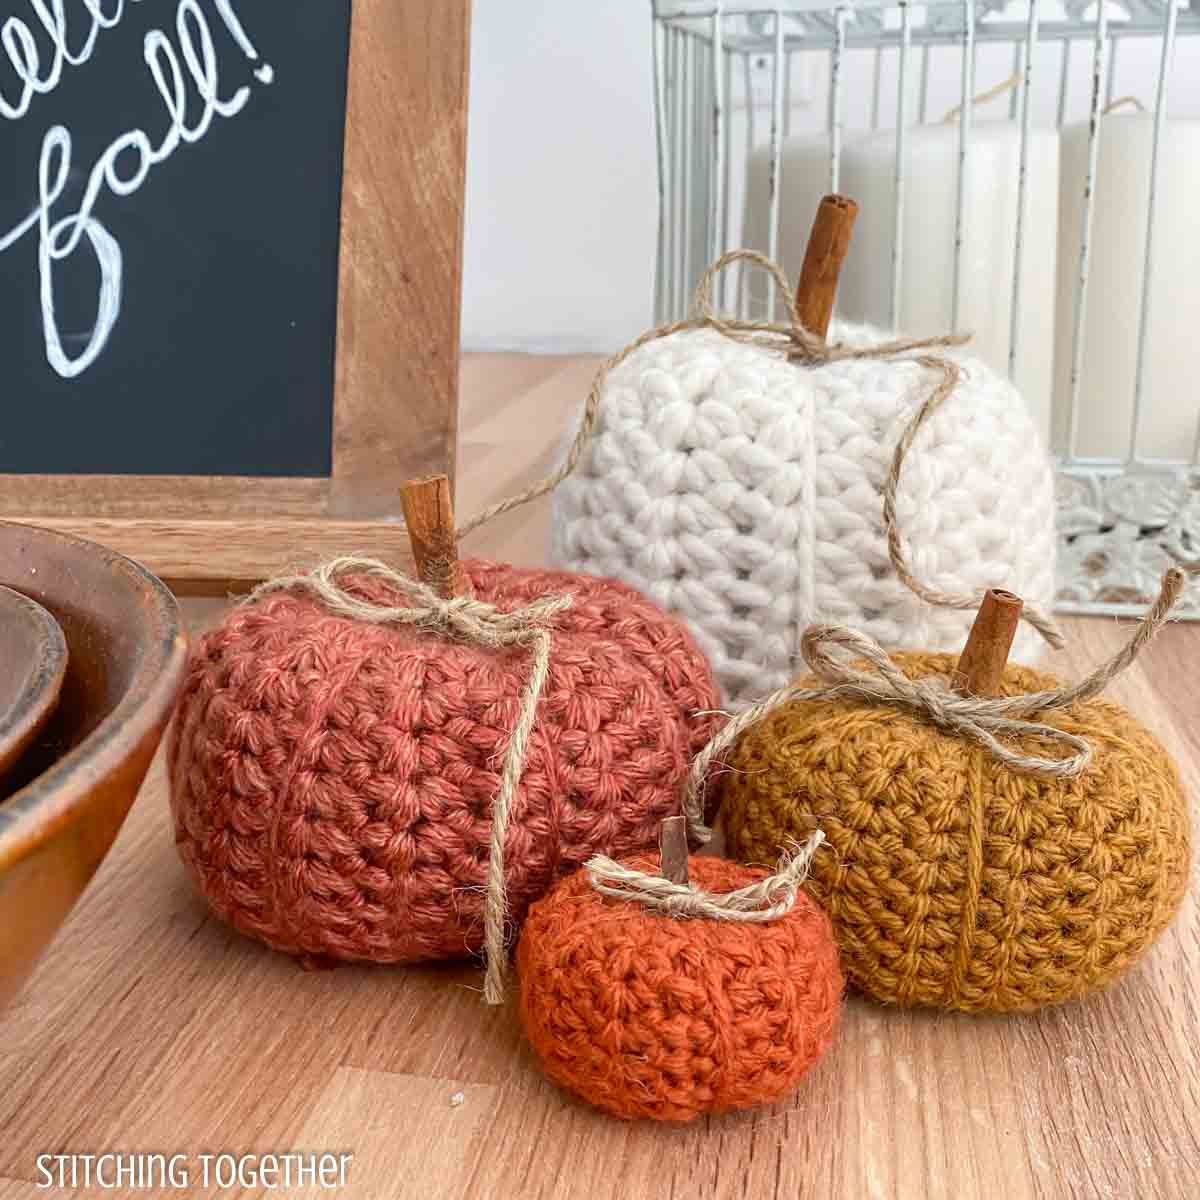 4 crochet pumpkins will surrounded by fall decor